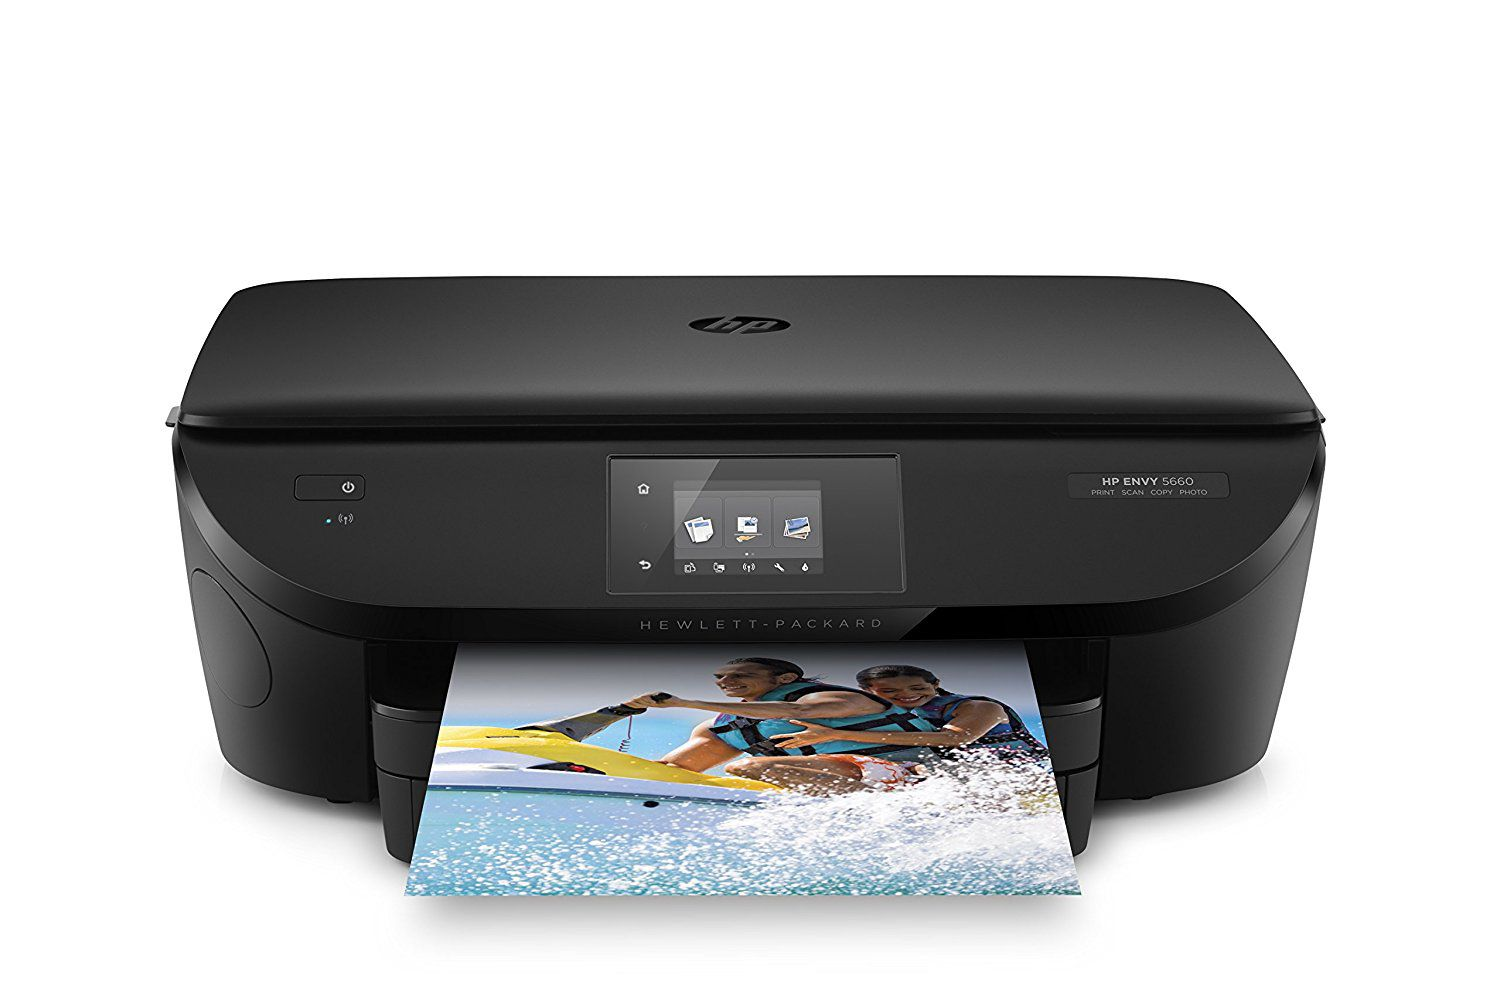 Best Home Printers 2019 The 8 Best Home Printers of 2019